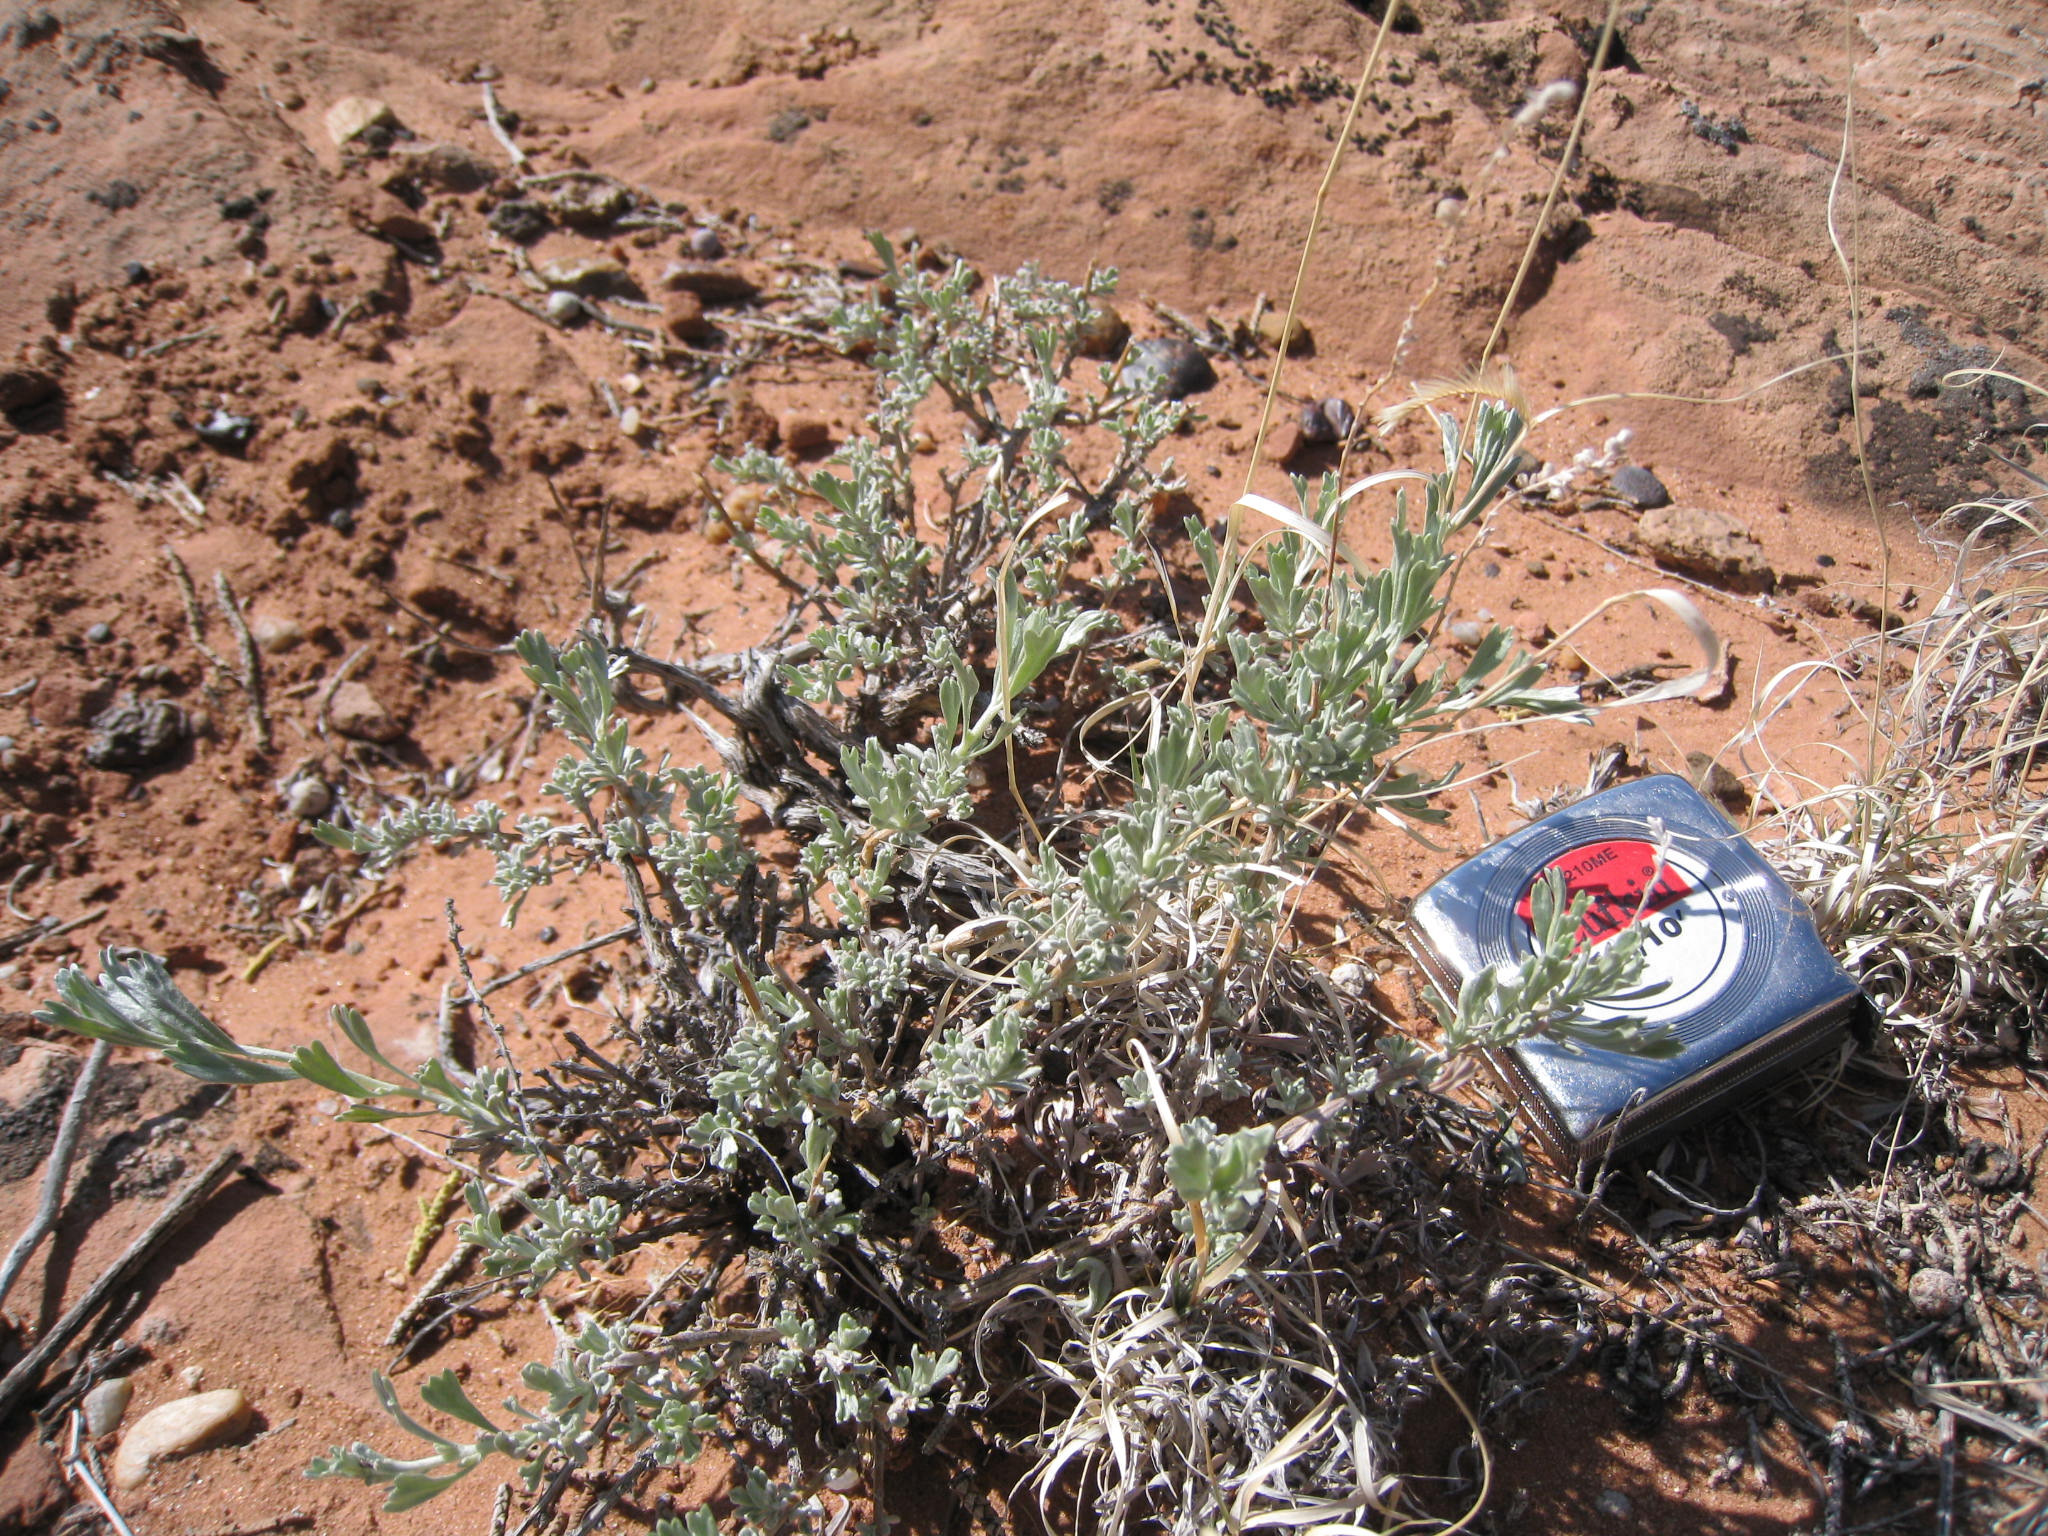 Bigelow sagebrush with tape measure, which show relatively small stature of this dwarf sagebrush